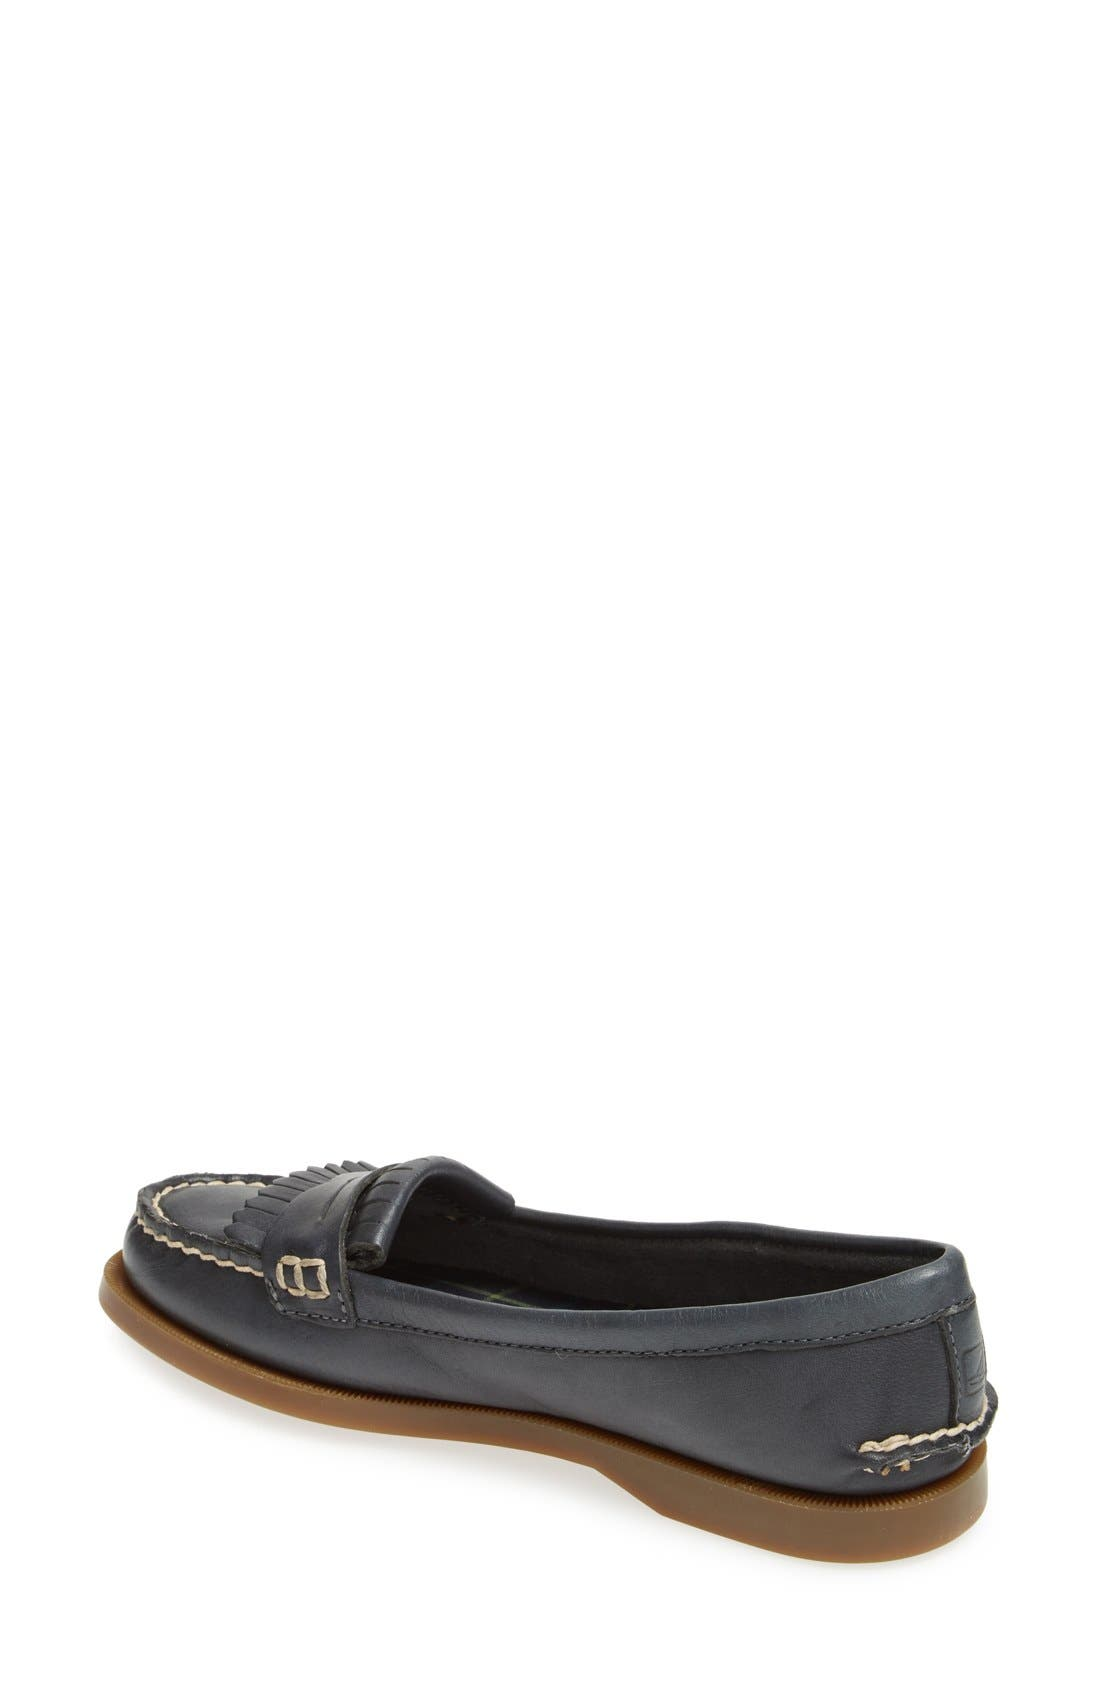 Alternate Image 2  - Sperry Top-Sider® 'Avery' Leather Loafer (Women)